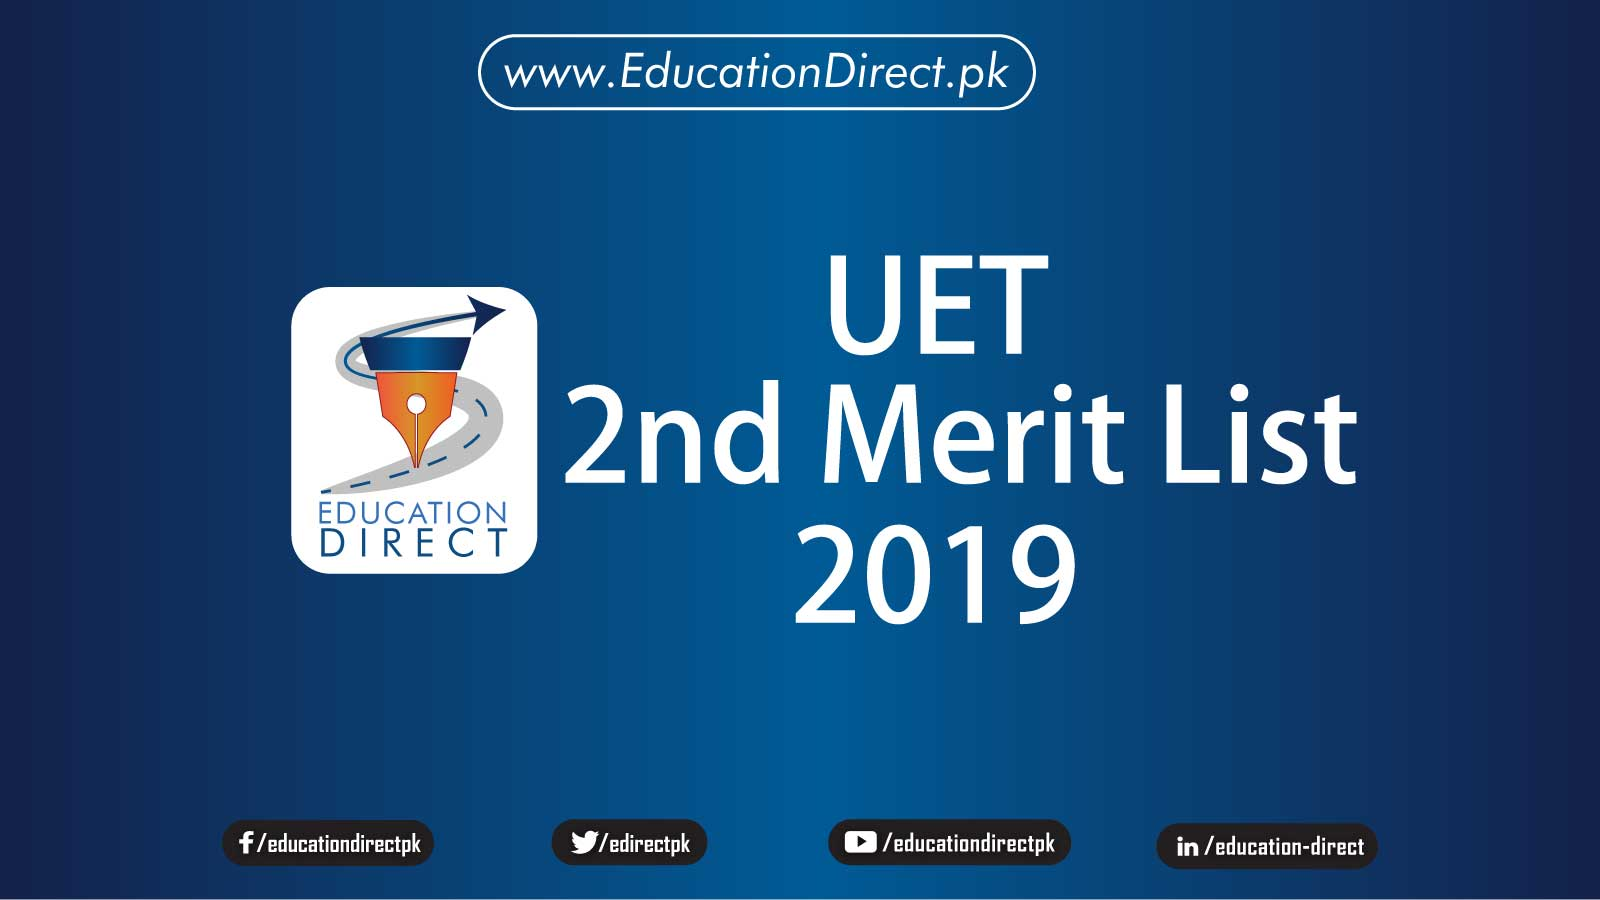 UET 2nd Merit List 2019